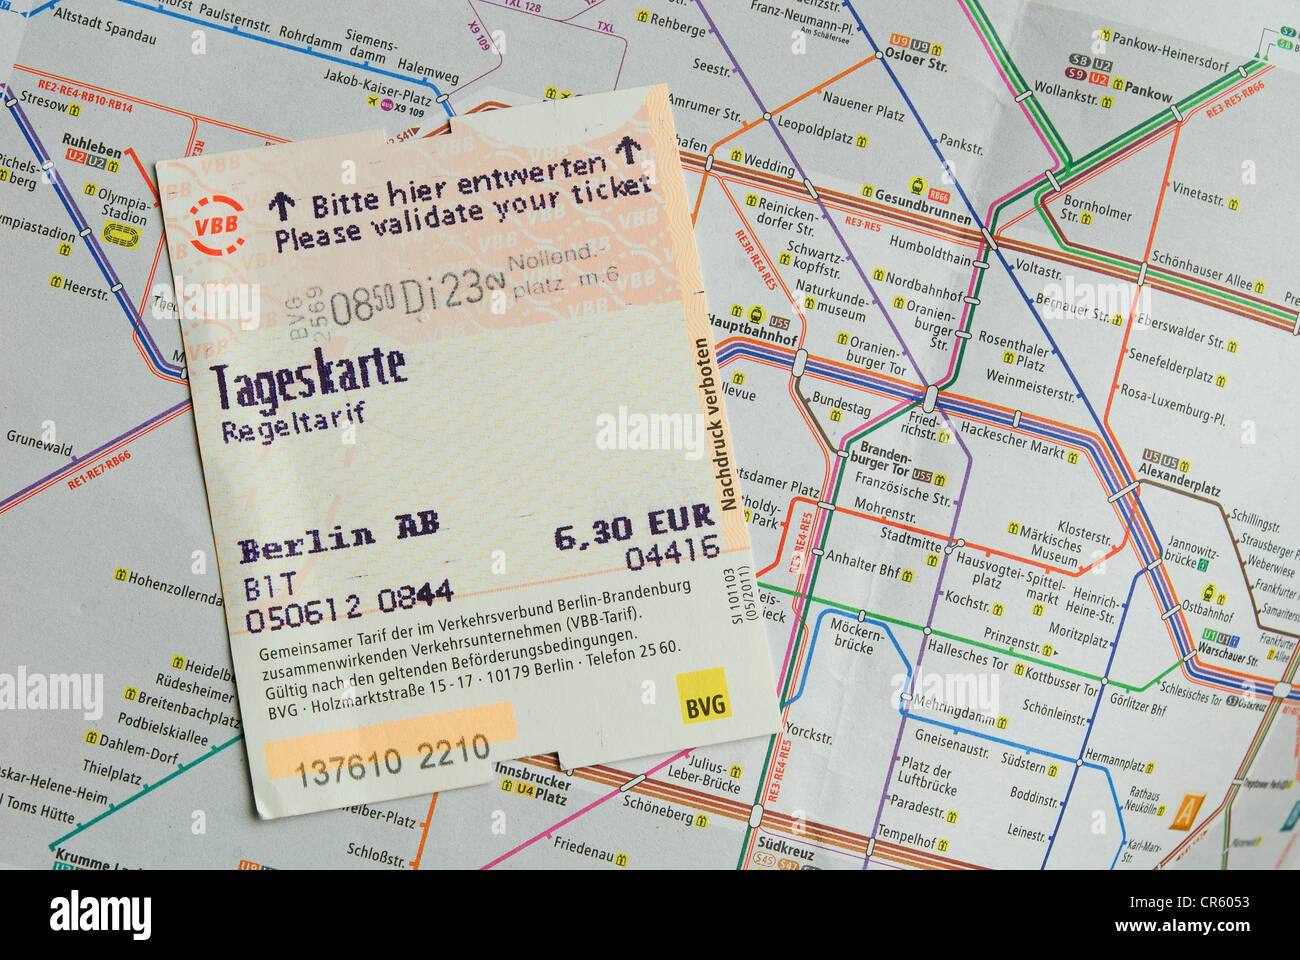 Berlin Germany A Validated Tageskarte travel Card On A Map – Germany Travel Map